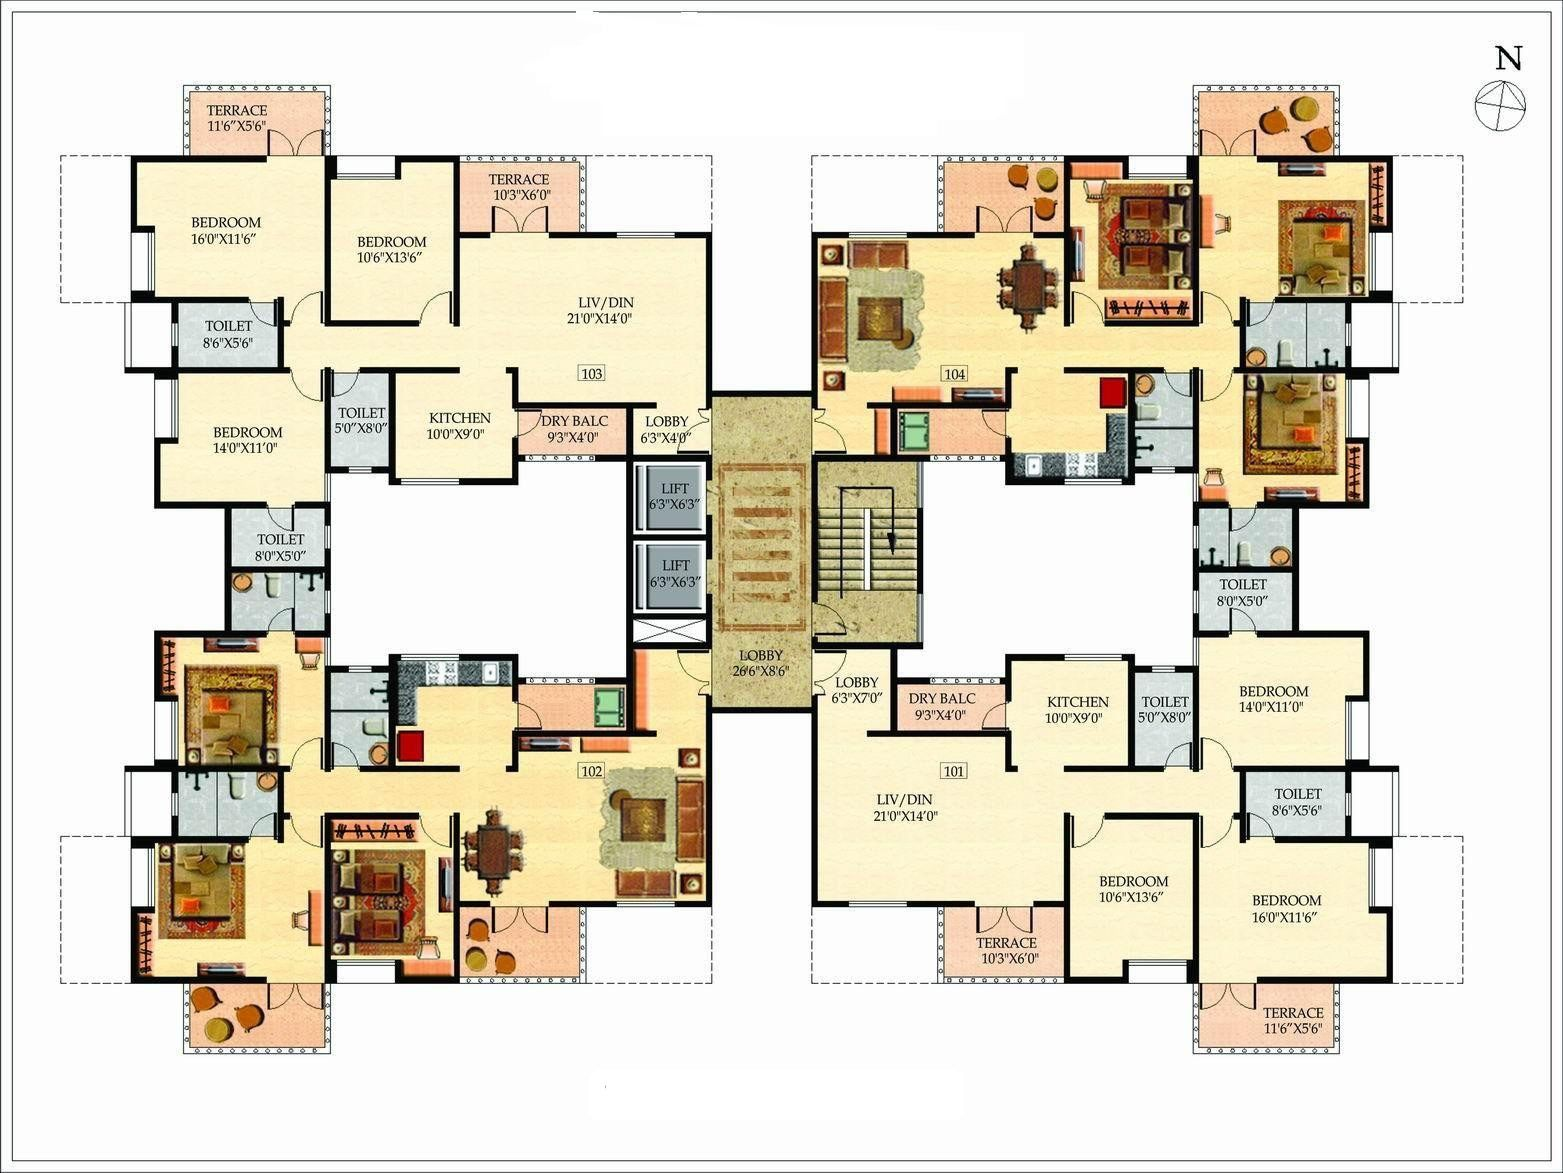 6 bedroom mansion floor plans design ideas 2017 2018 pinterest mansion bedrooms and - Manufactured homes designs ...